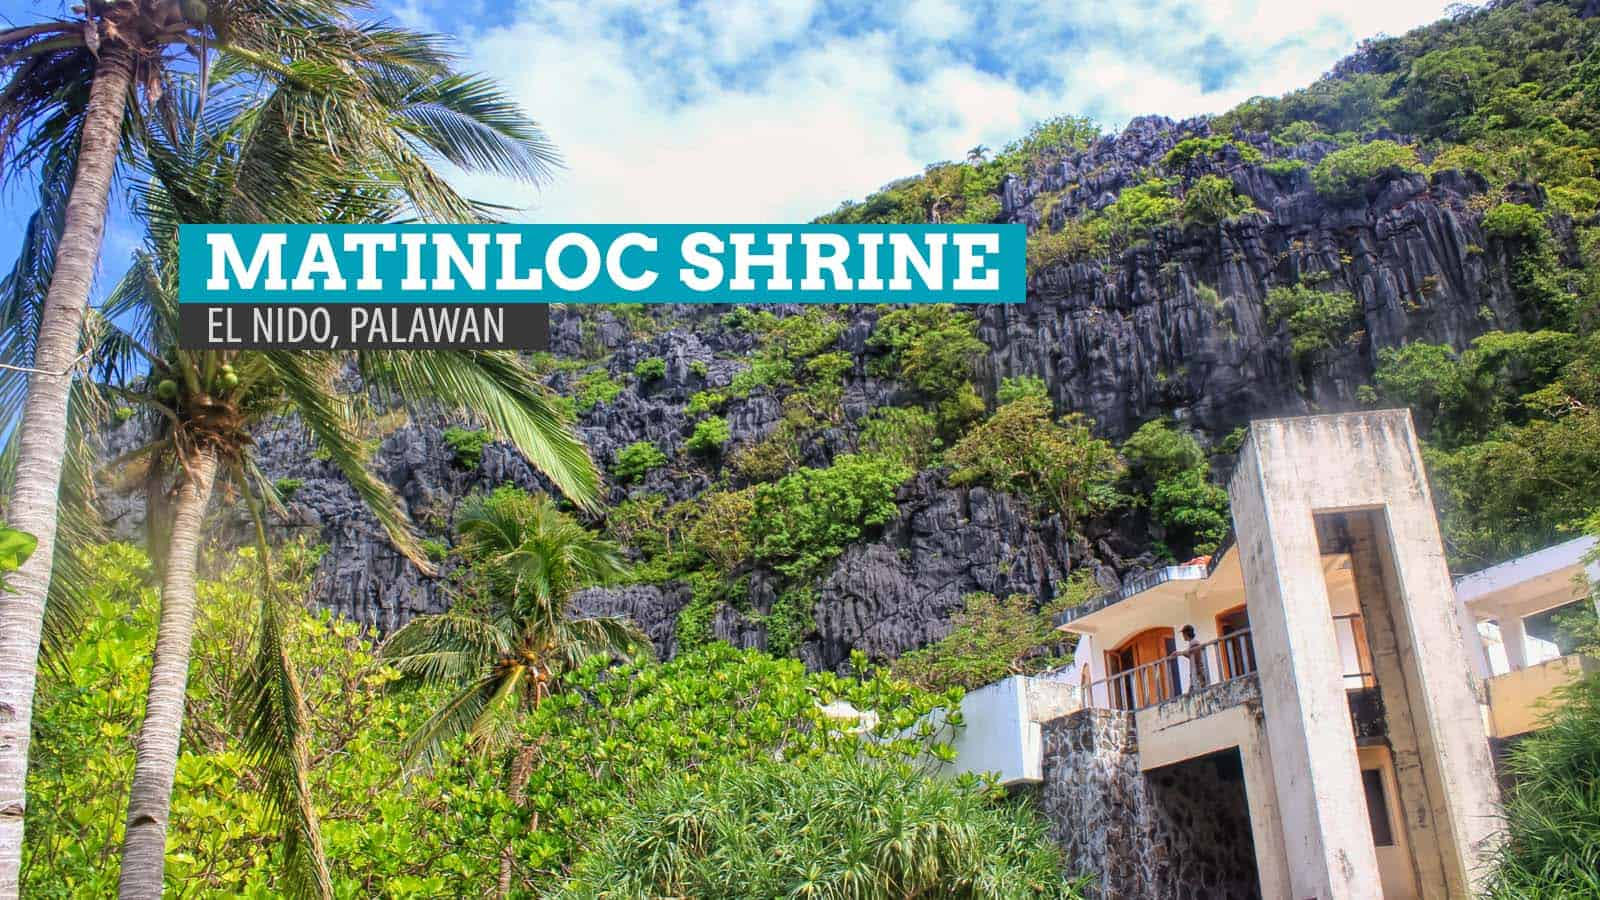 Matinloc Shrine: The Two Faces of Abandonment in El Nido, Palawan